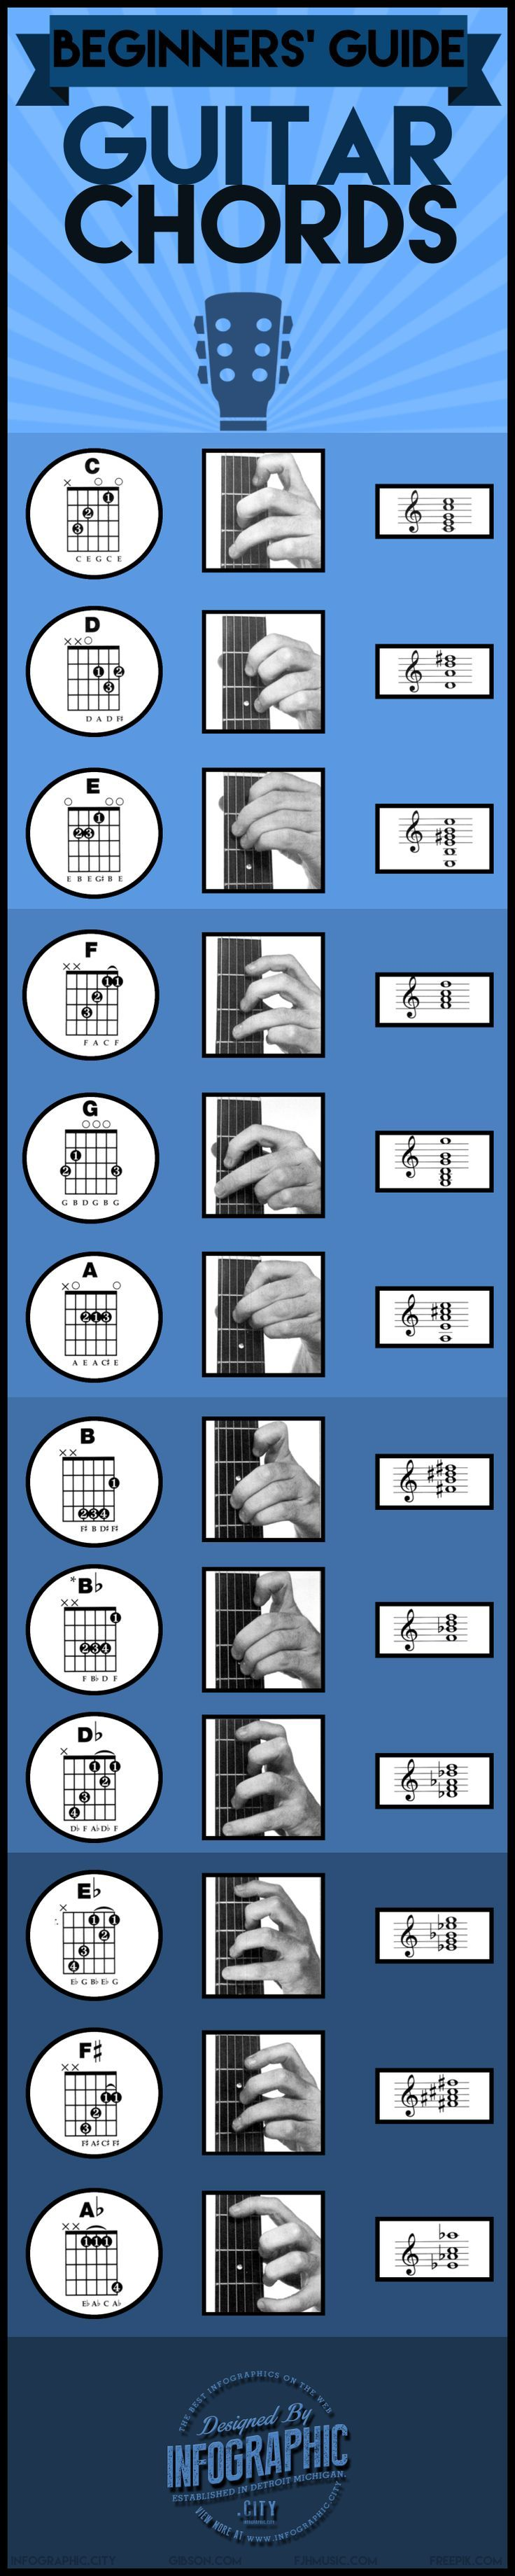 A beginners guide to guitar chords infographic city